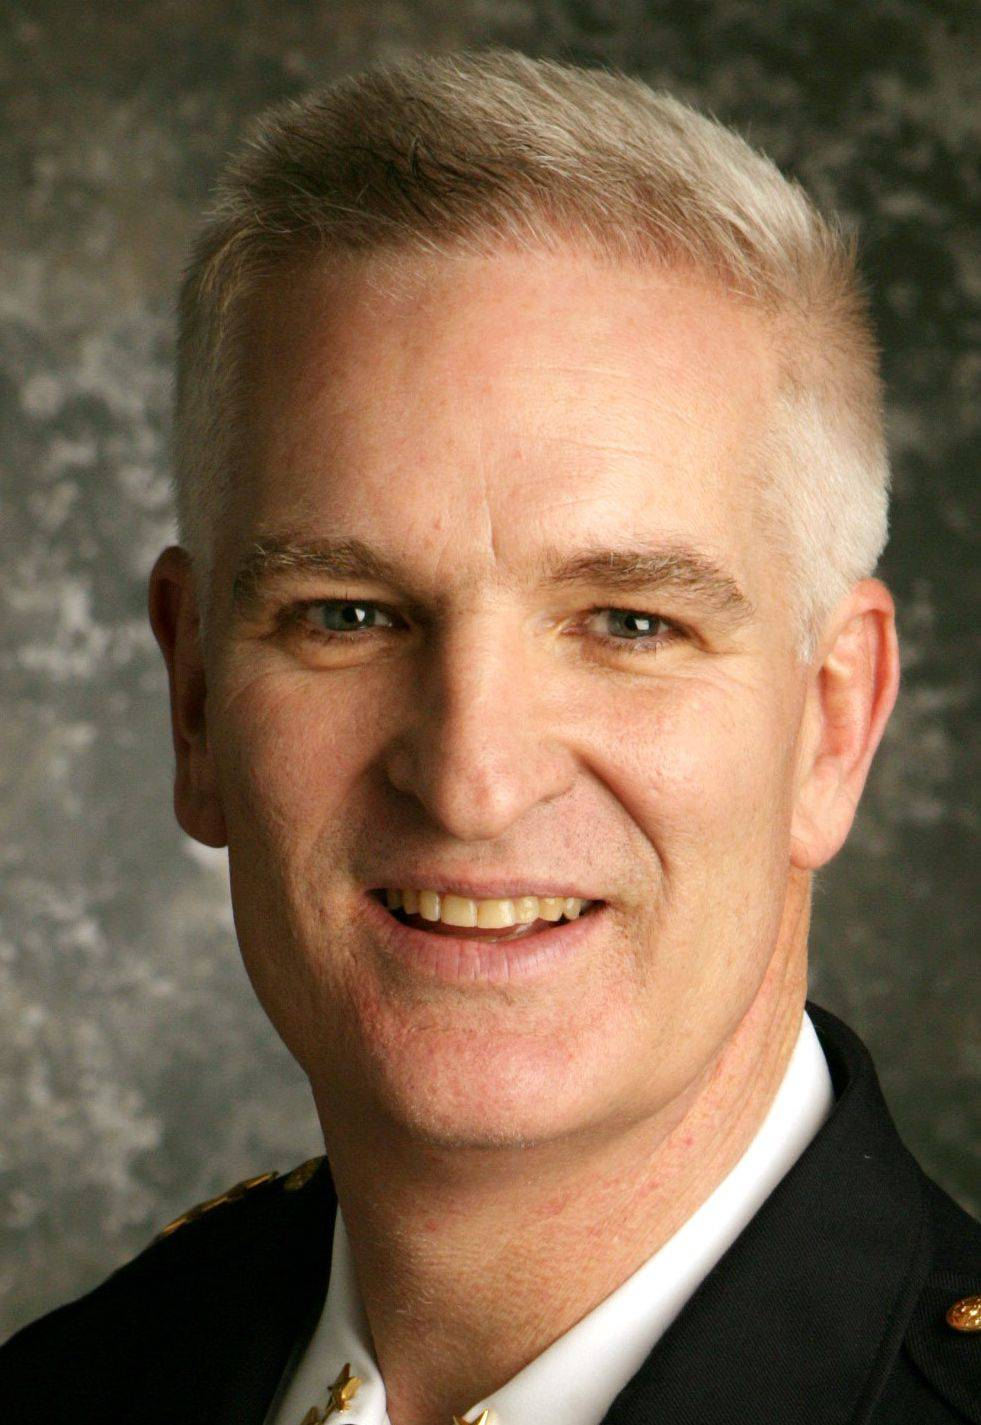 Lake County Sheriff Mark Curran is backing proposed legislation that would allow illegal immigrants to get driver's licenses, saying it's an economic imperative for our financially struggling state.